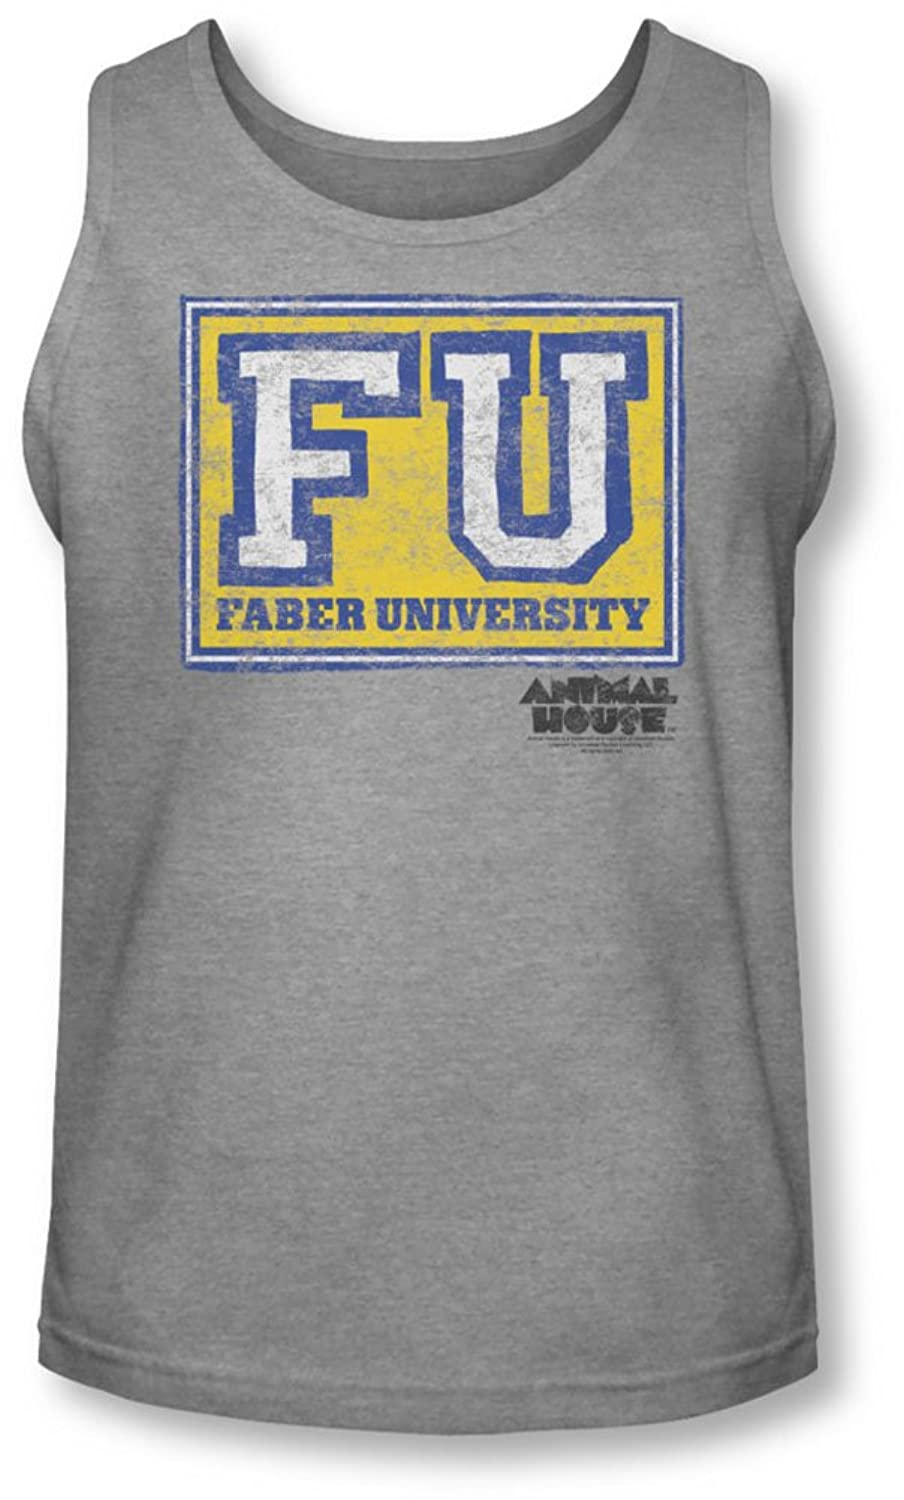 Animal House - Mens Faber University Tank-Top